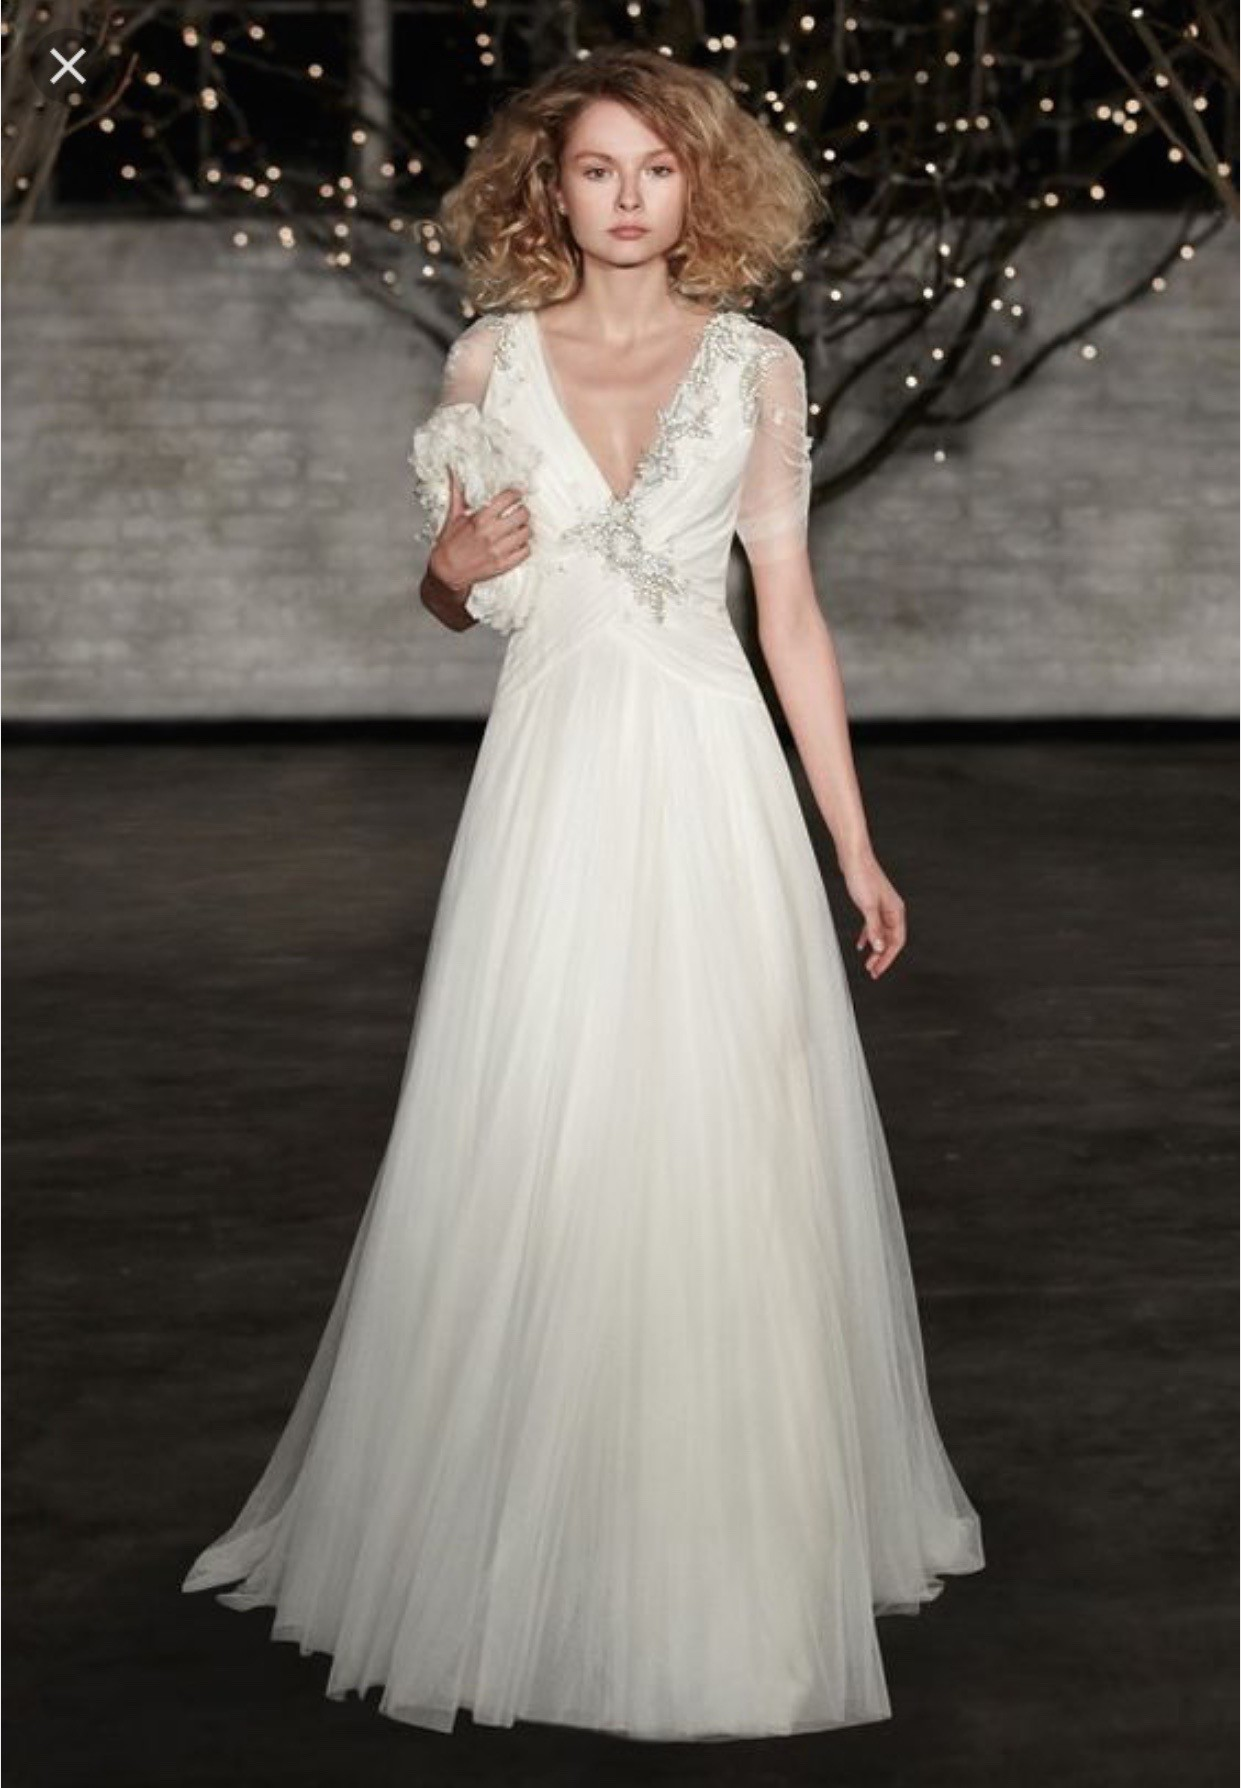 Jenny packham amour second hand wedding dress on sale 64 off for Postpartum dresses for wedding